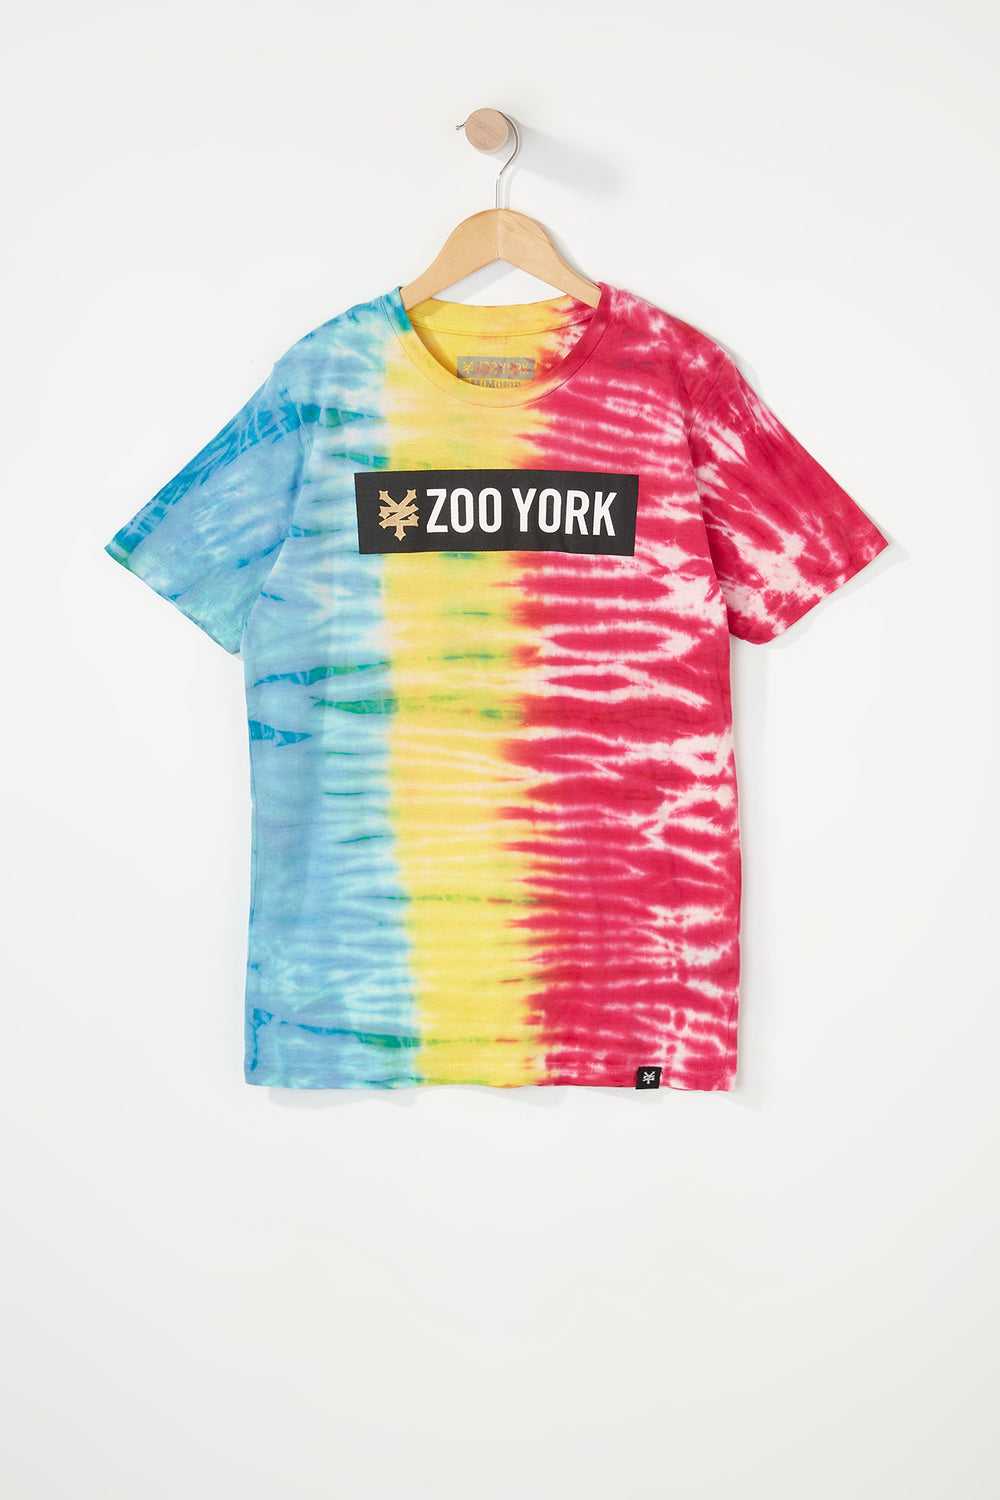 Zoo York Boys Tie-Dye T-Shirt Multi